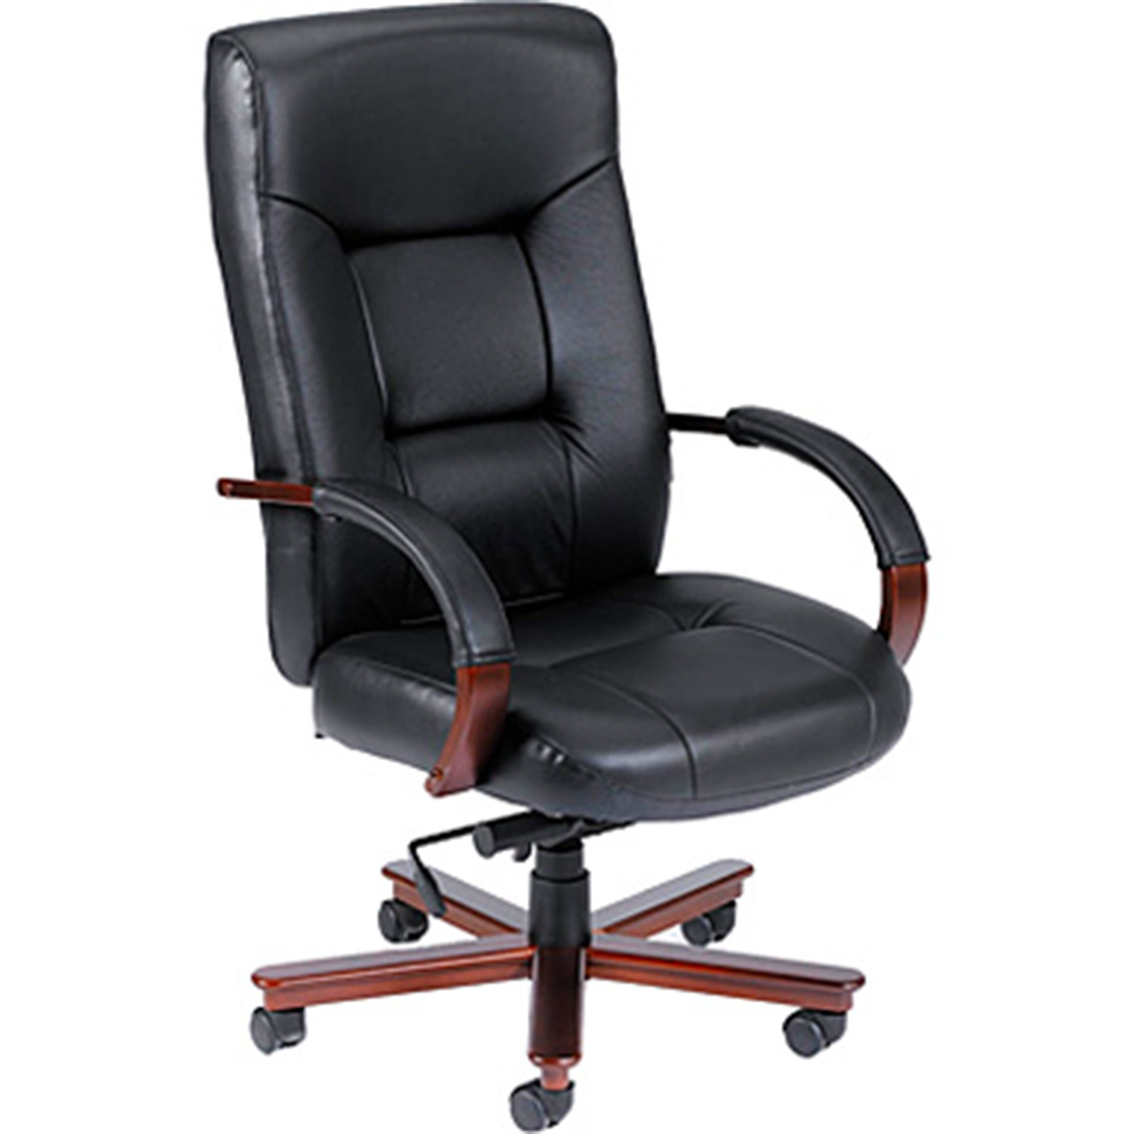 Presidential seating black top grain leather computer chair with mahogany finish